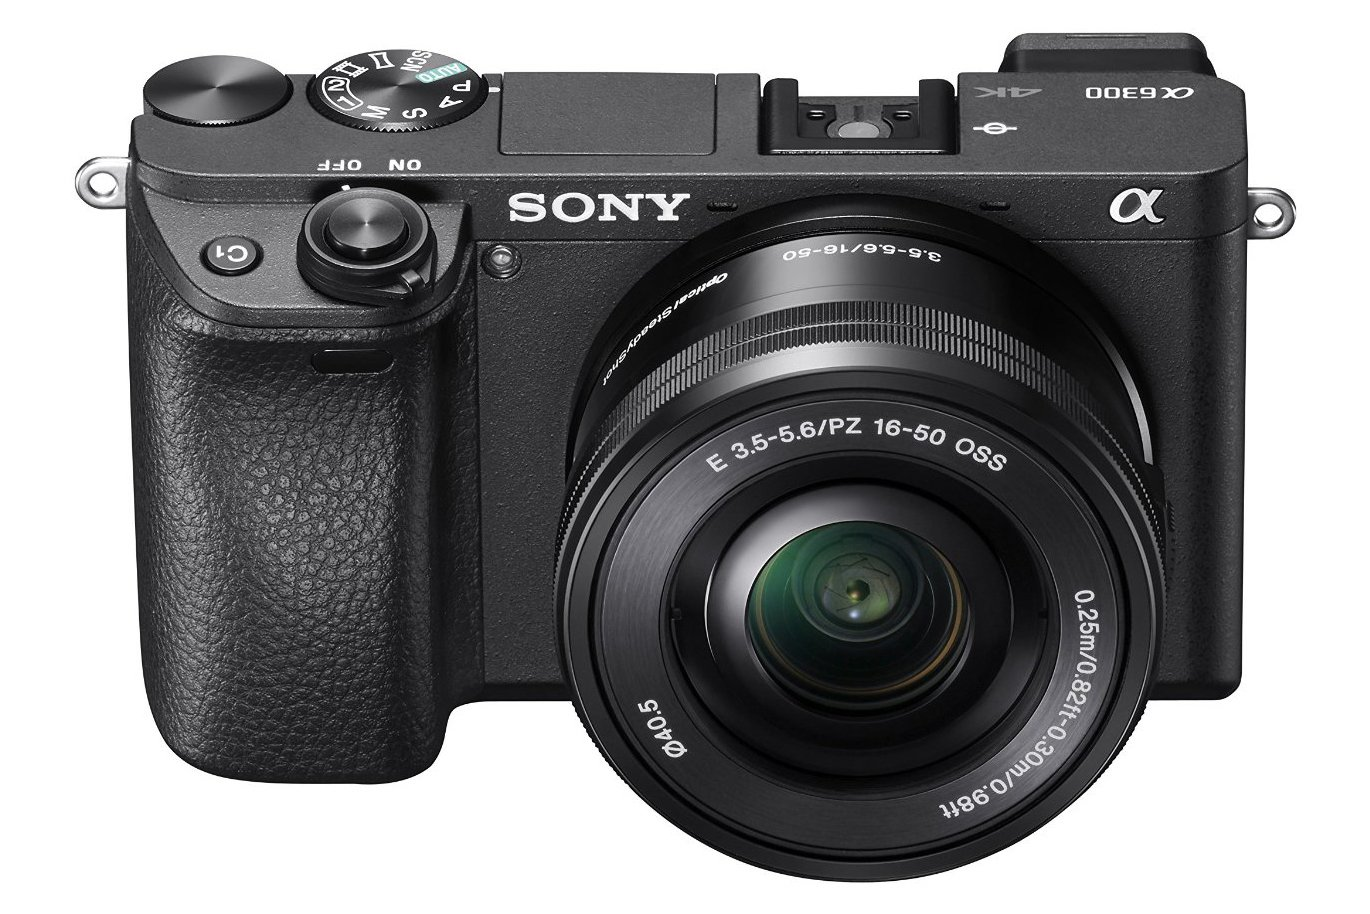 Sony Alpha a6300  Photo 6 of 10 in The best cameras of 2016